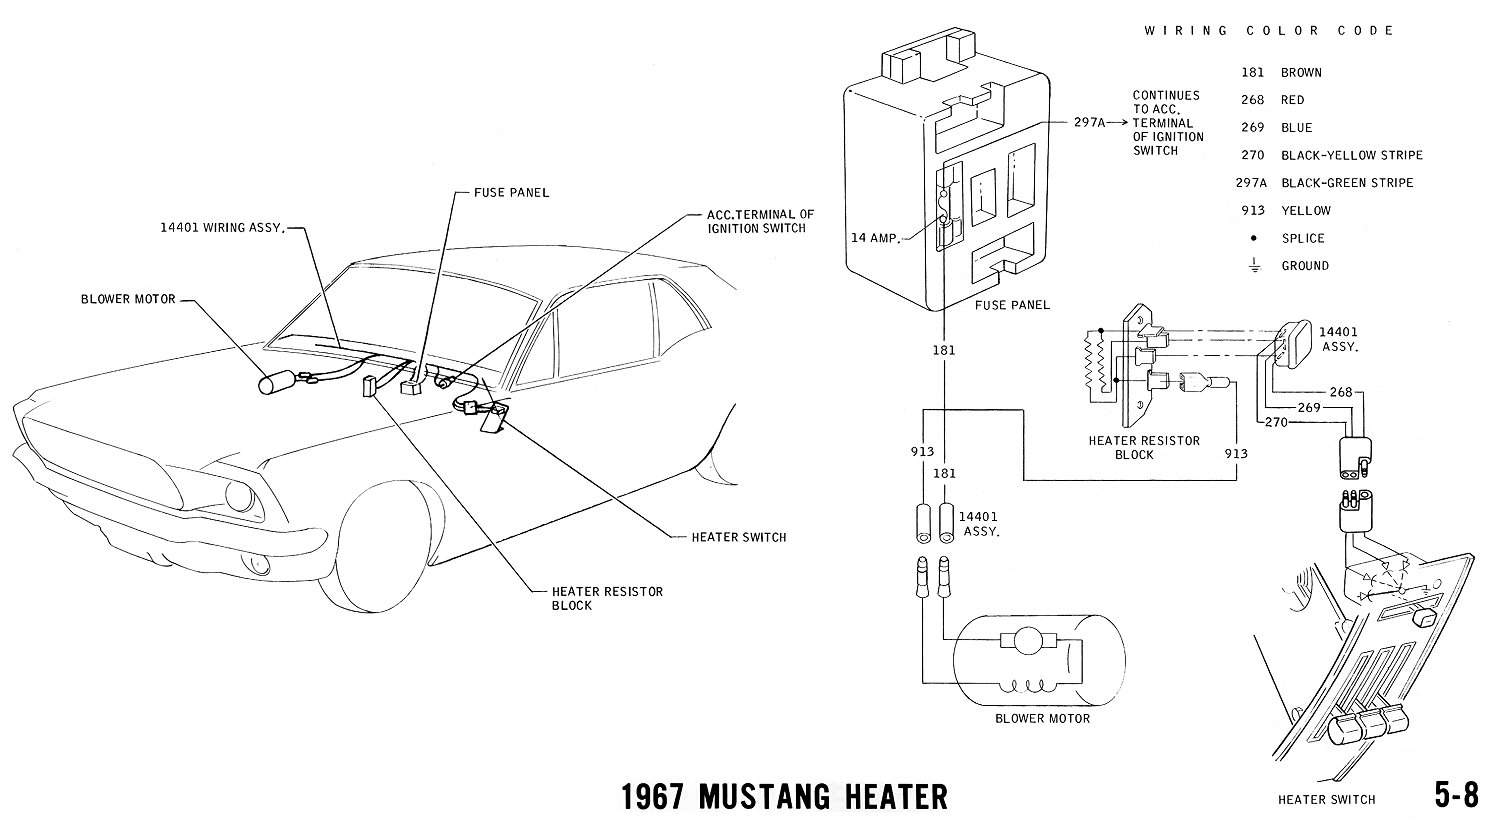 1988 ford f150 5 0l engine diagram  ford  auto wiring diagram